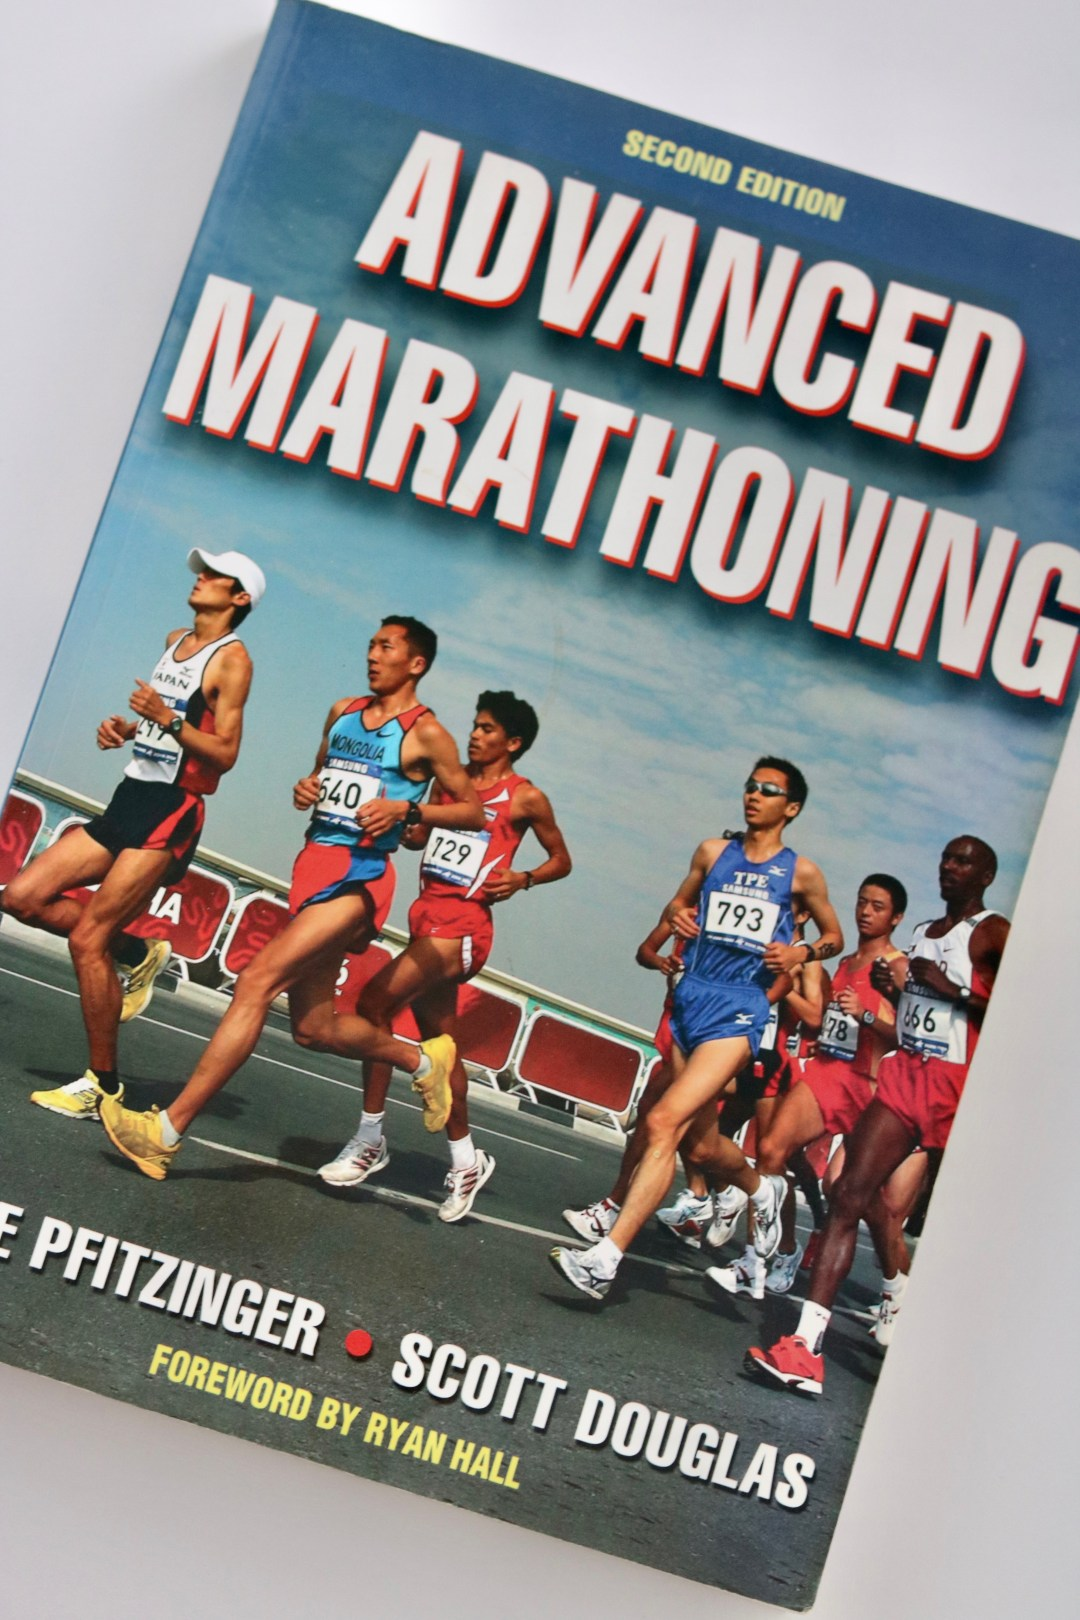 Advanced Marathoning book